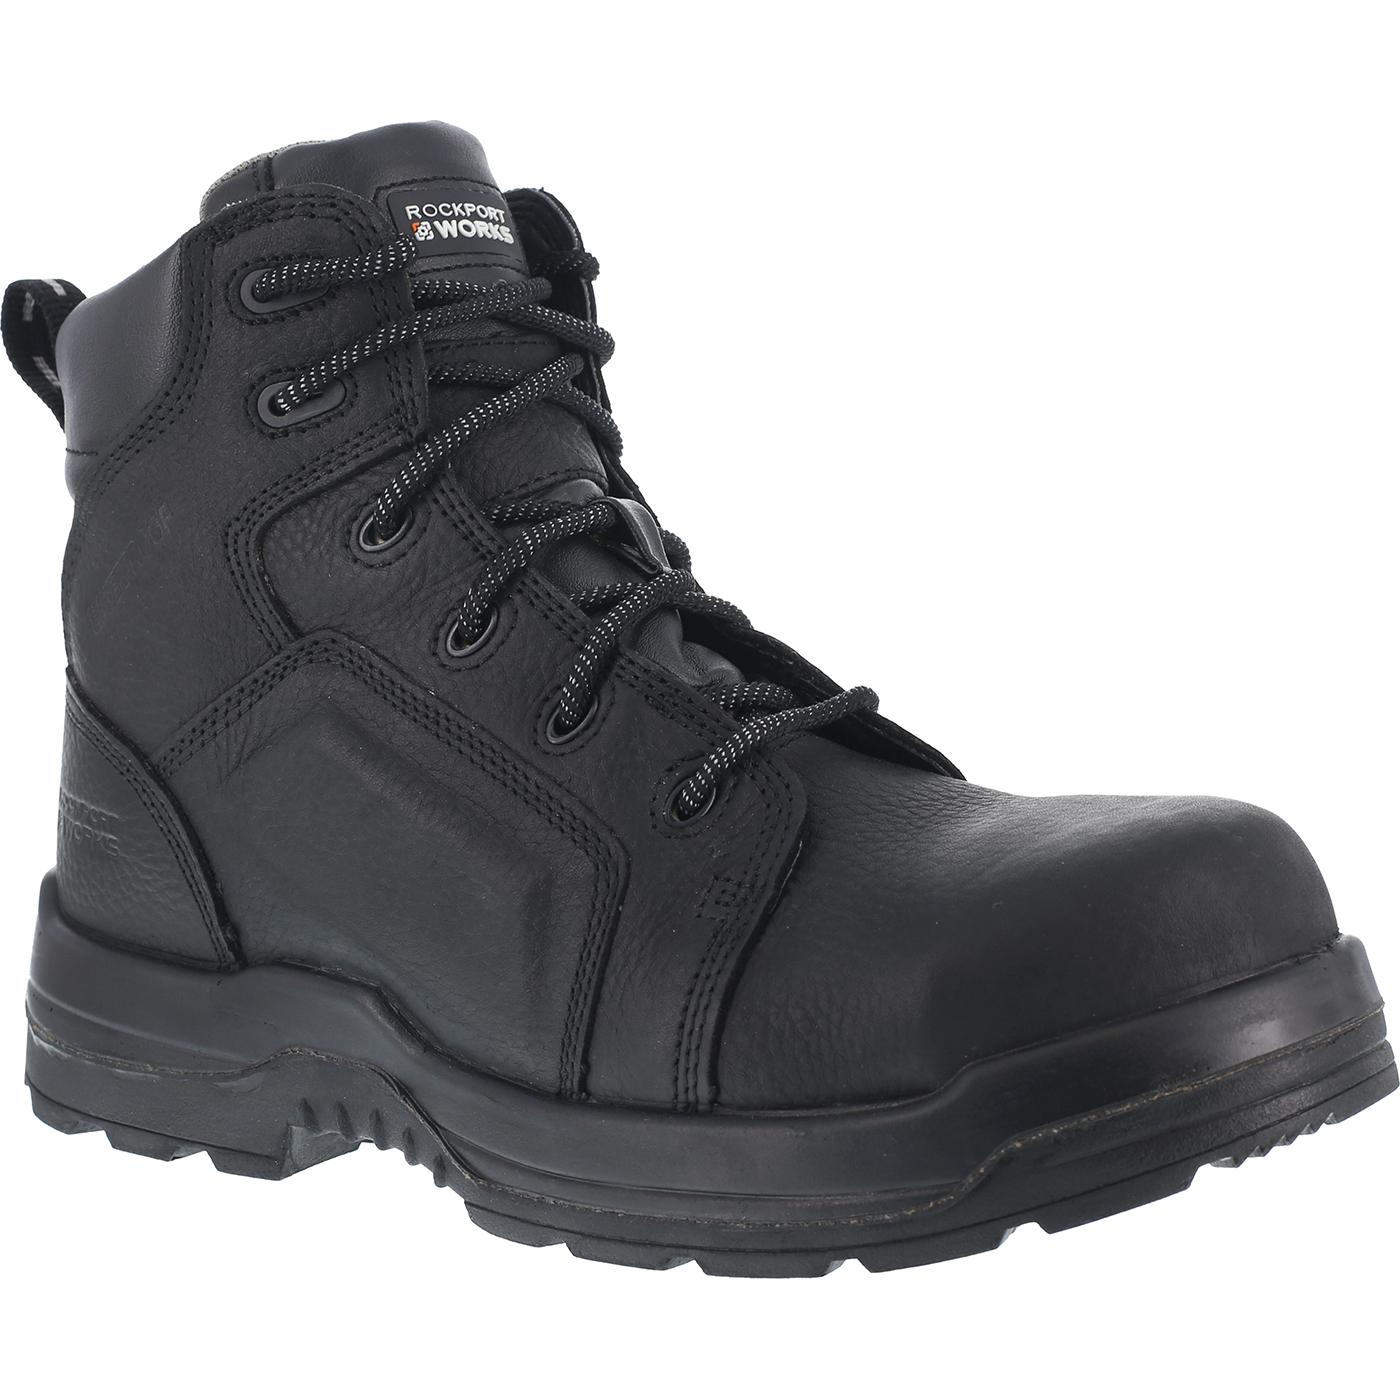 Model Avenger Women39s Steel Toe Waterproof Hiker Work Boot A7125